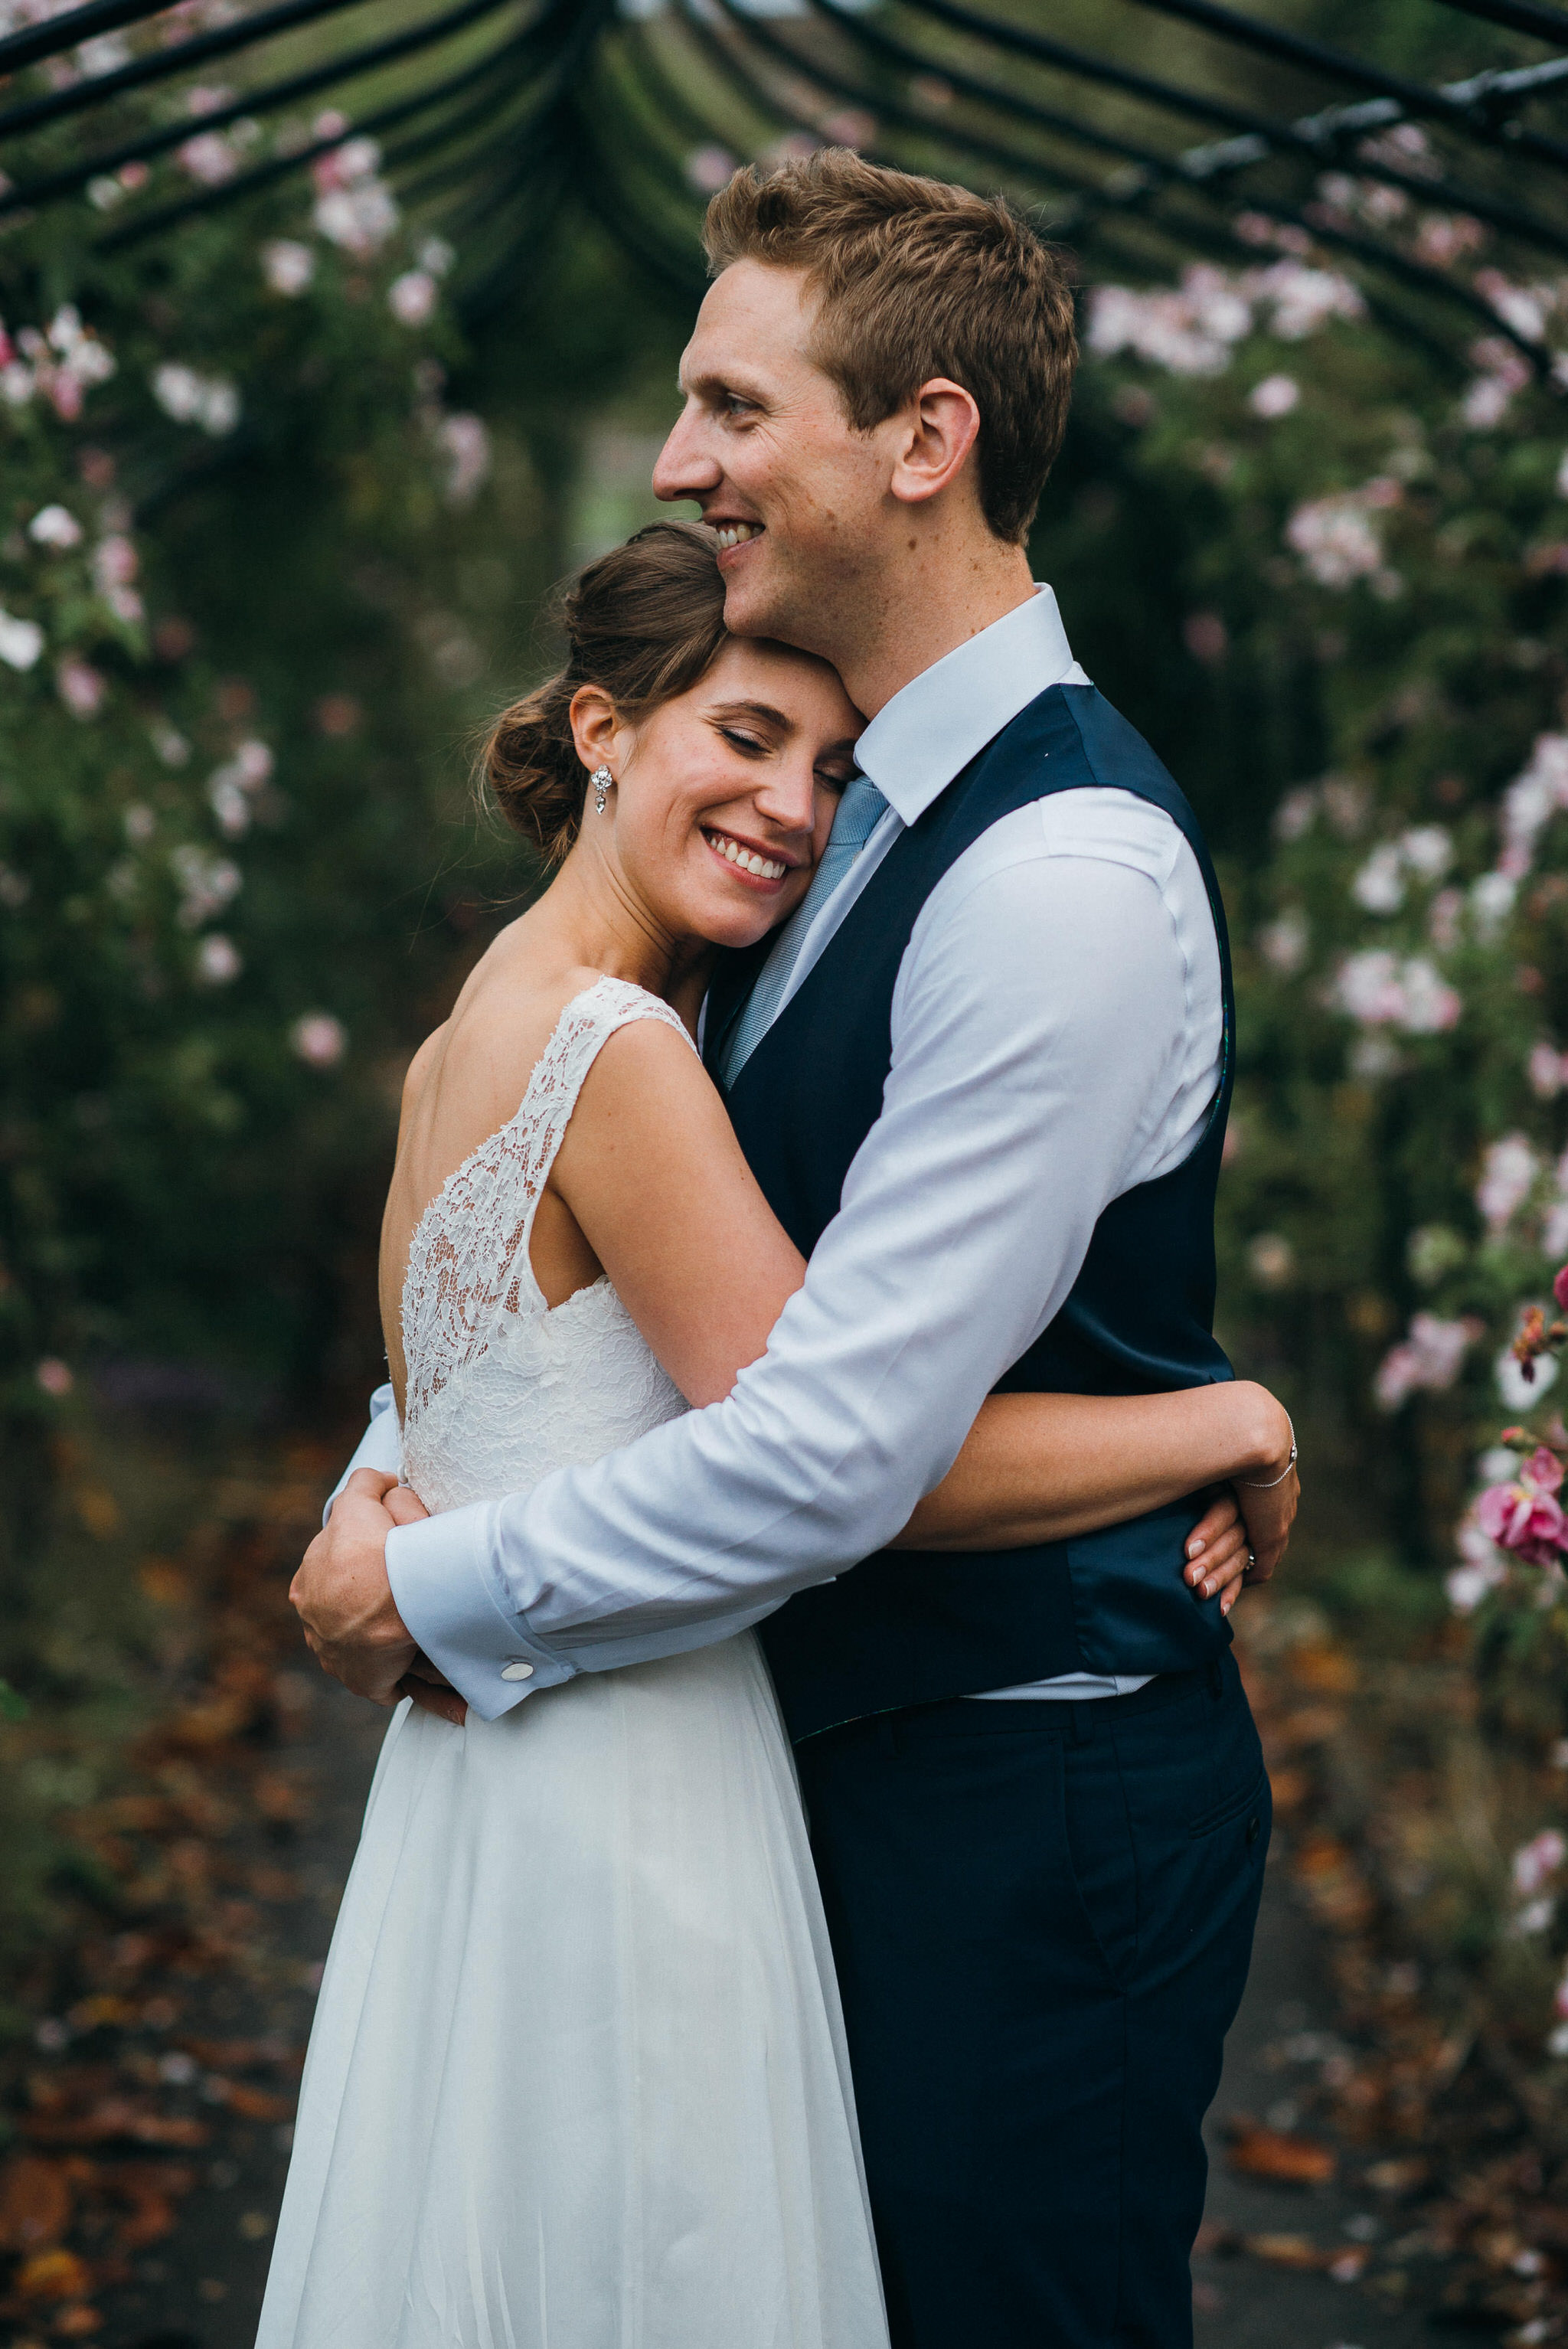 Newlyweds at Nonsuch Mansion